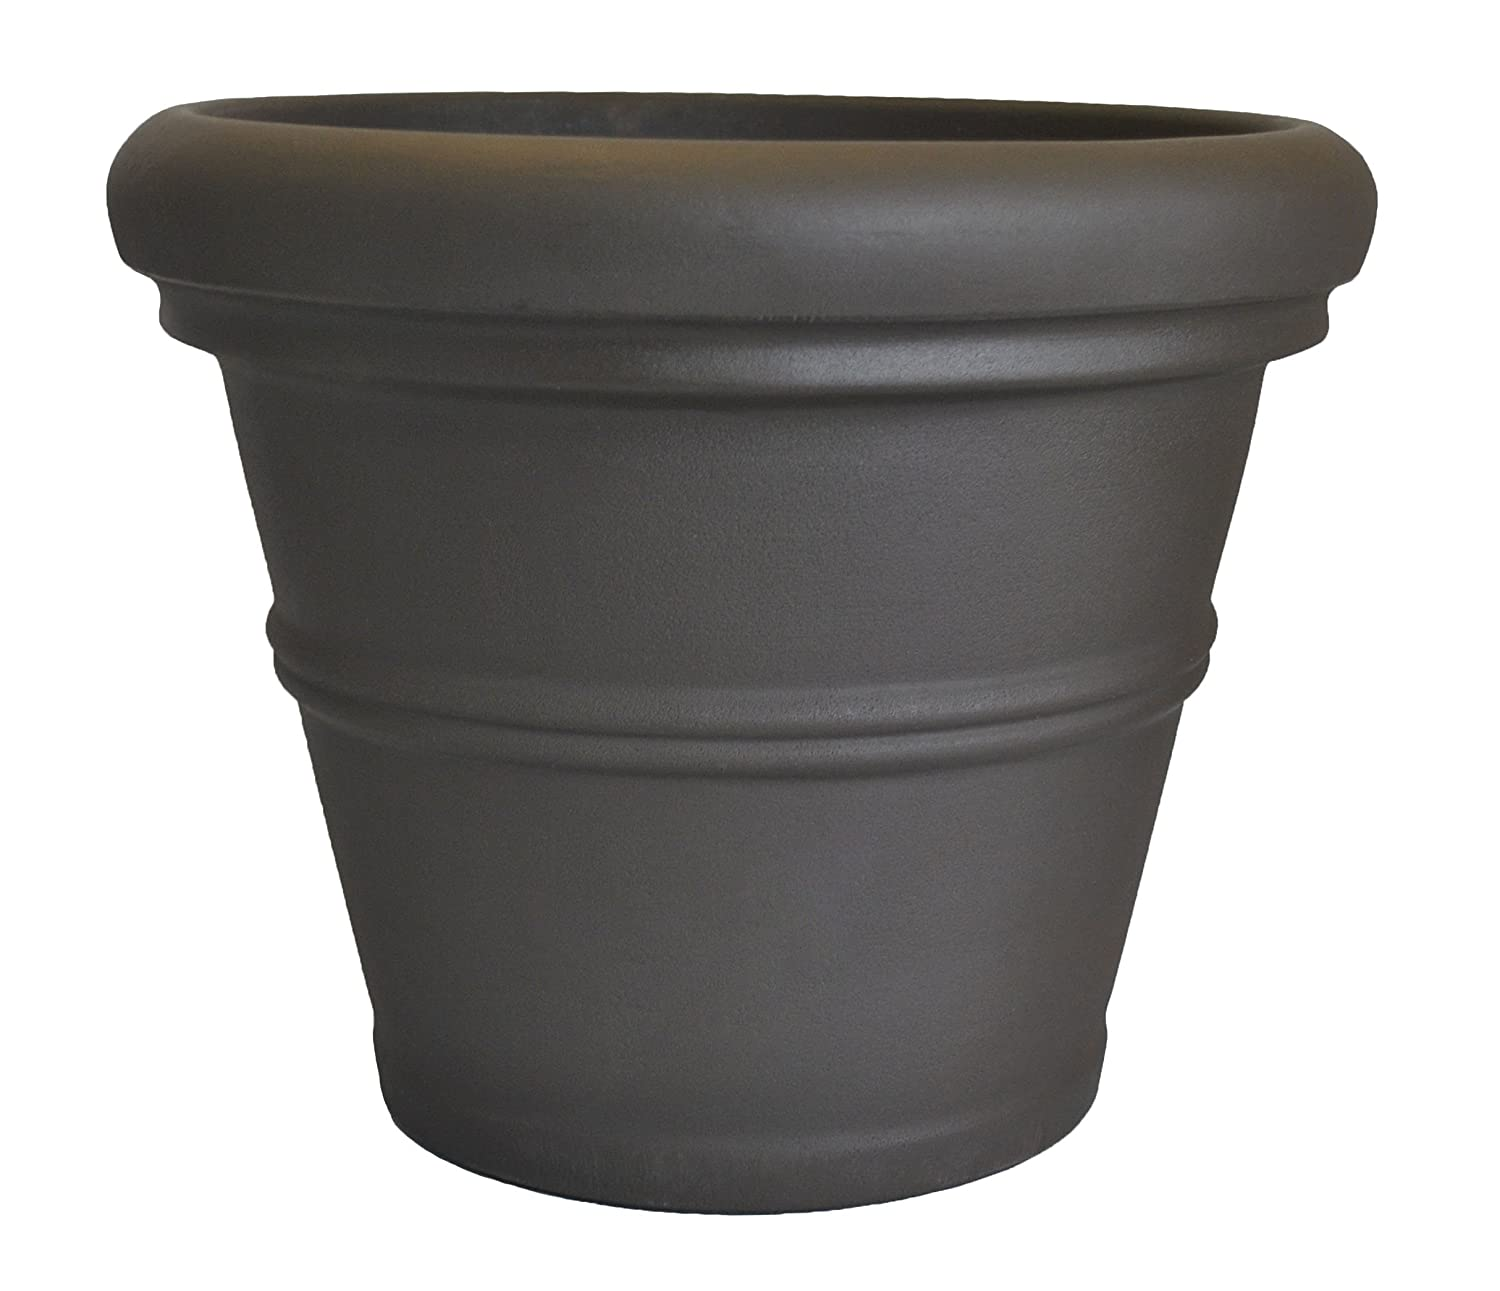 Tusco Products RR245ES Rolled Rim Garden Pot, 24.5-Inch, Espresso